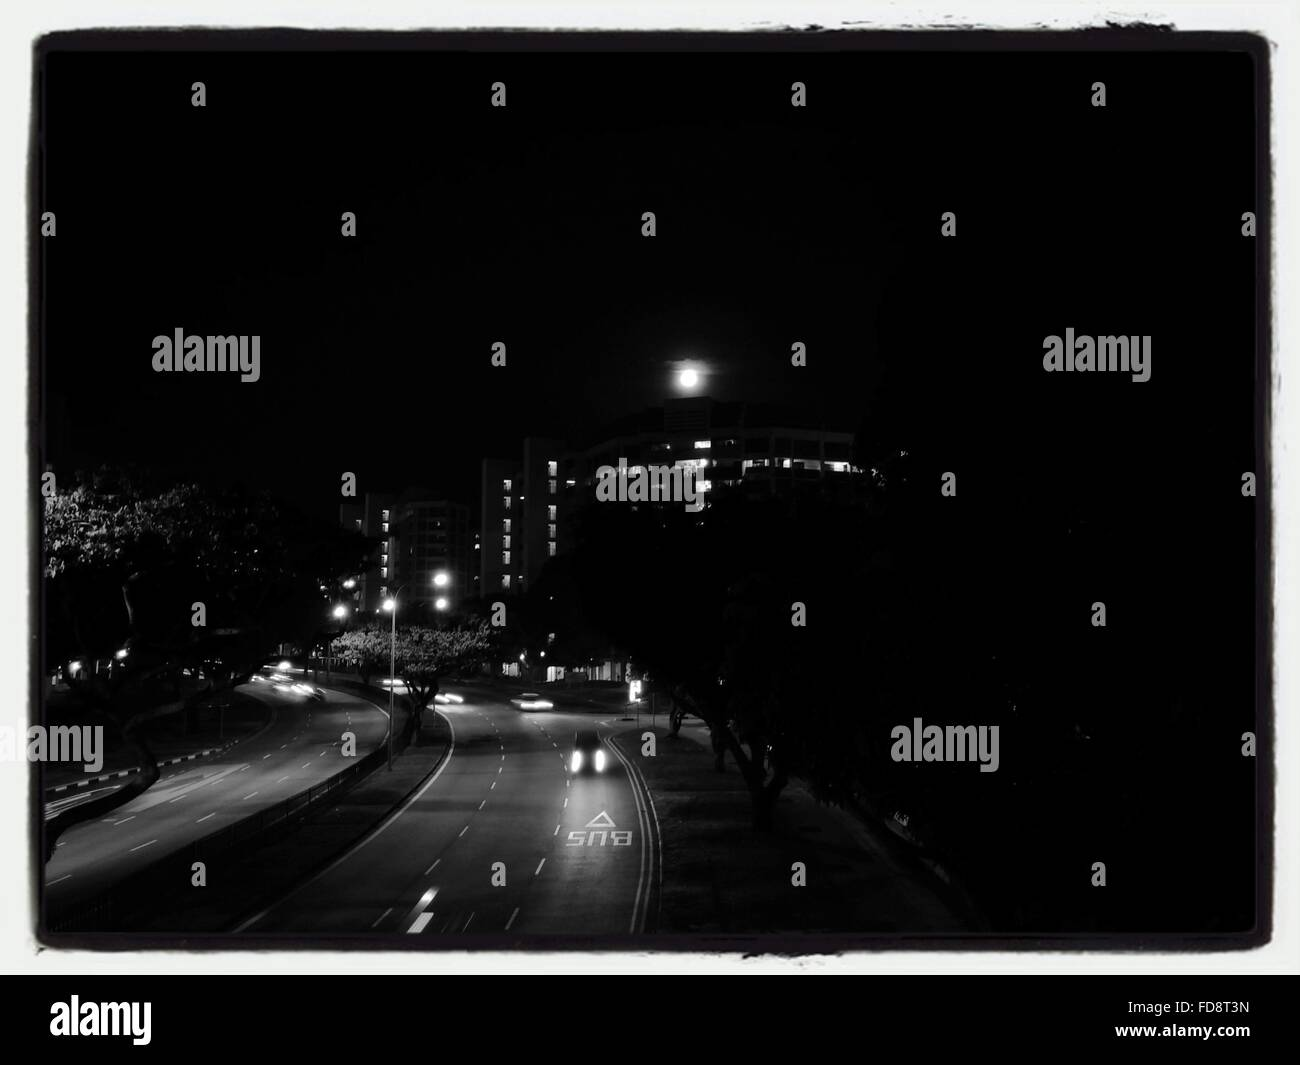 Illuminated Street In City Against Clear Sky At Night - Stock Image